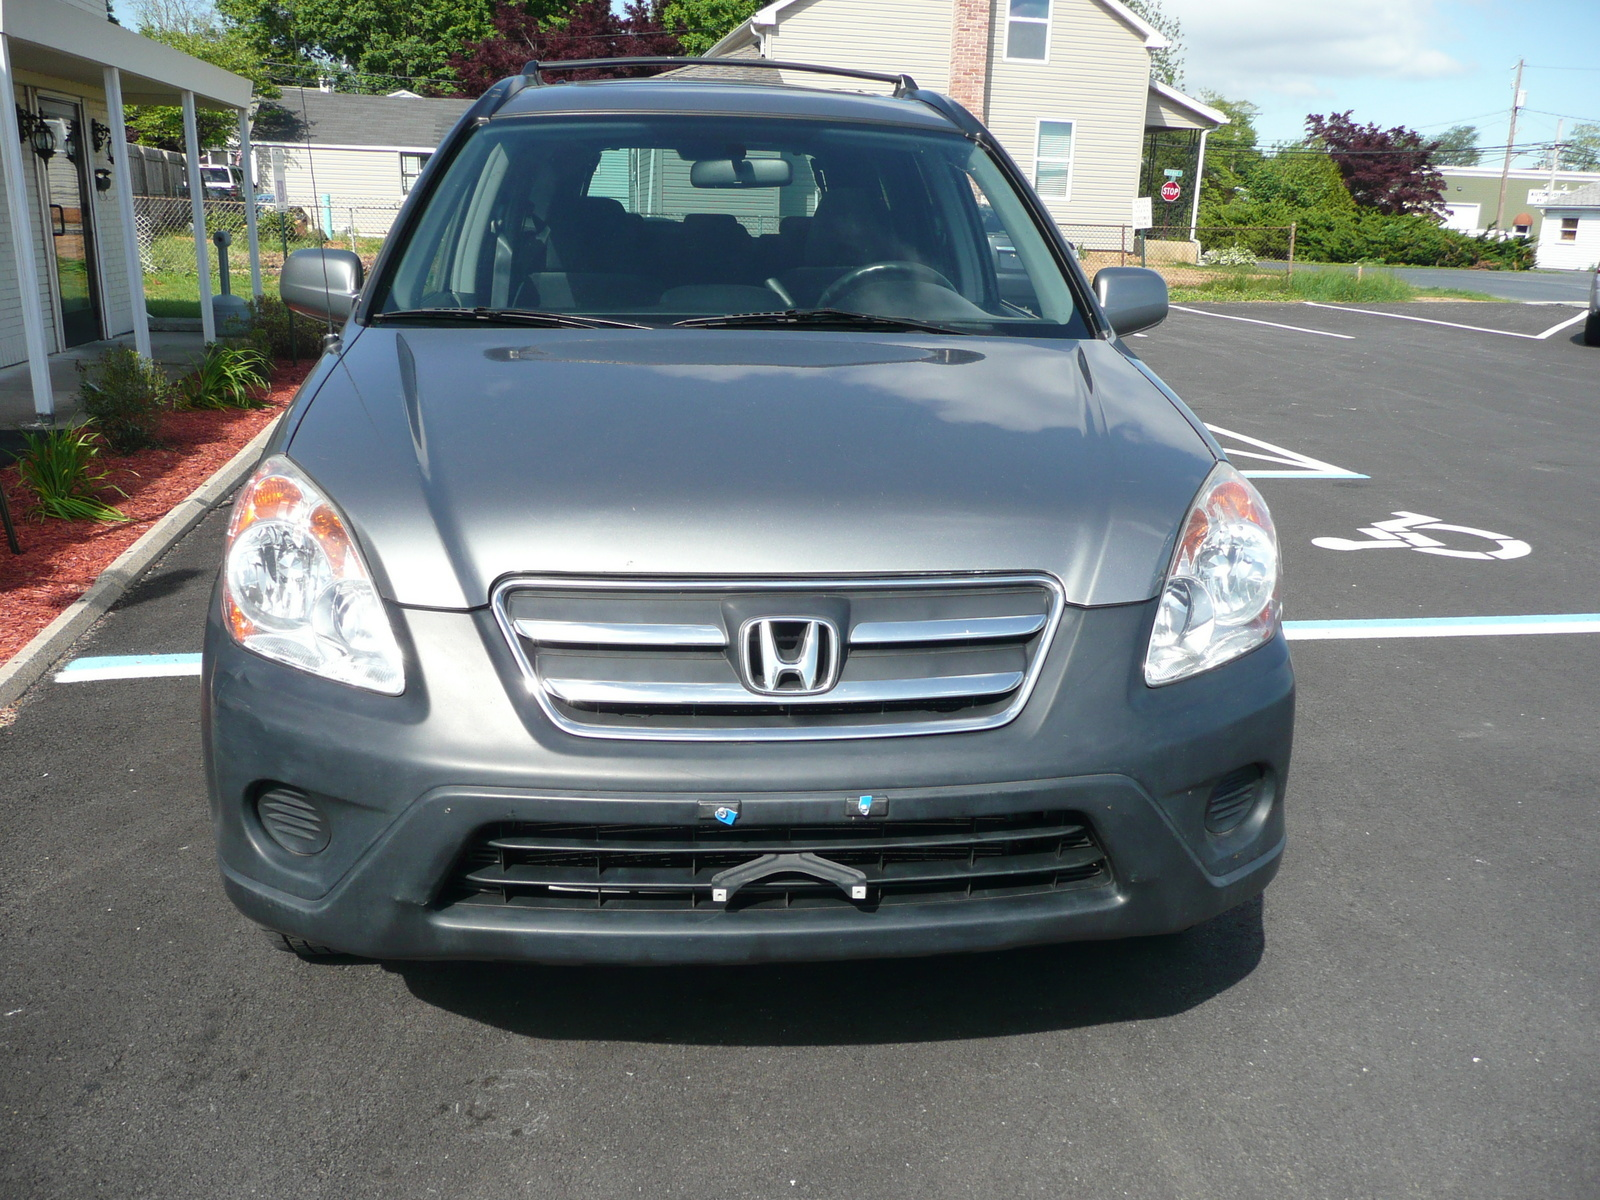 Honda Cr V Questions Can I Announce My Car To Sell On Car Gurus Cargurus